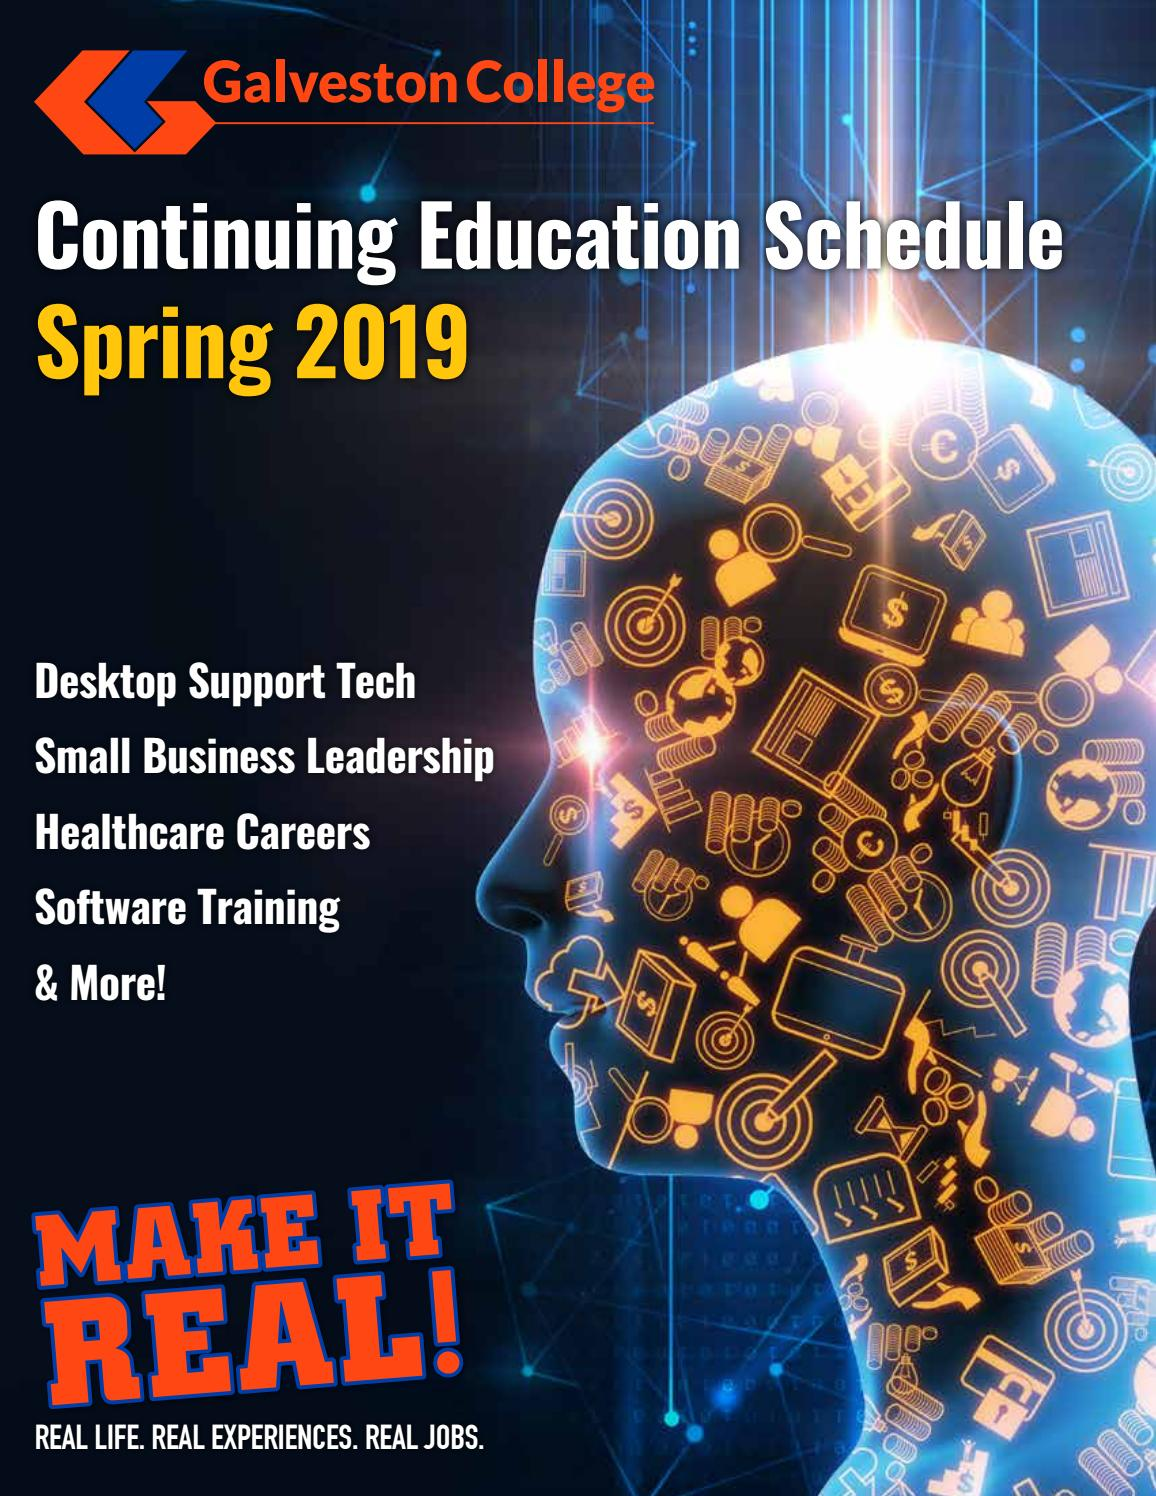 2019 Galveston College Continuing Education Schedule by